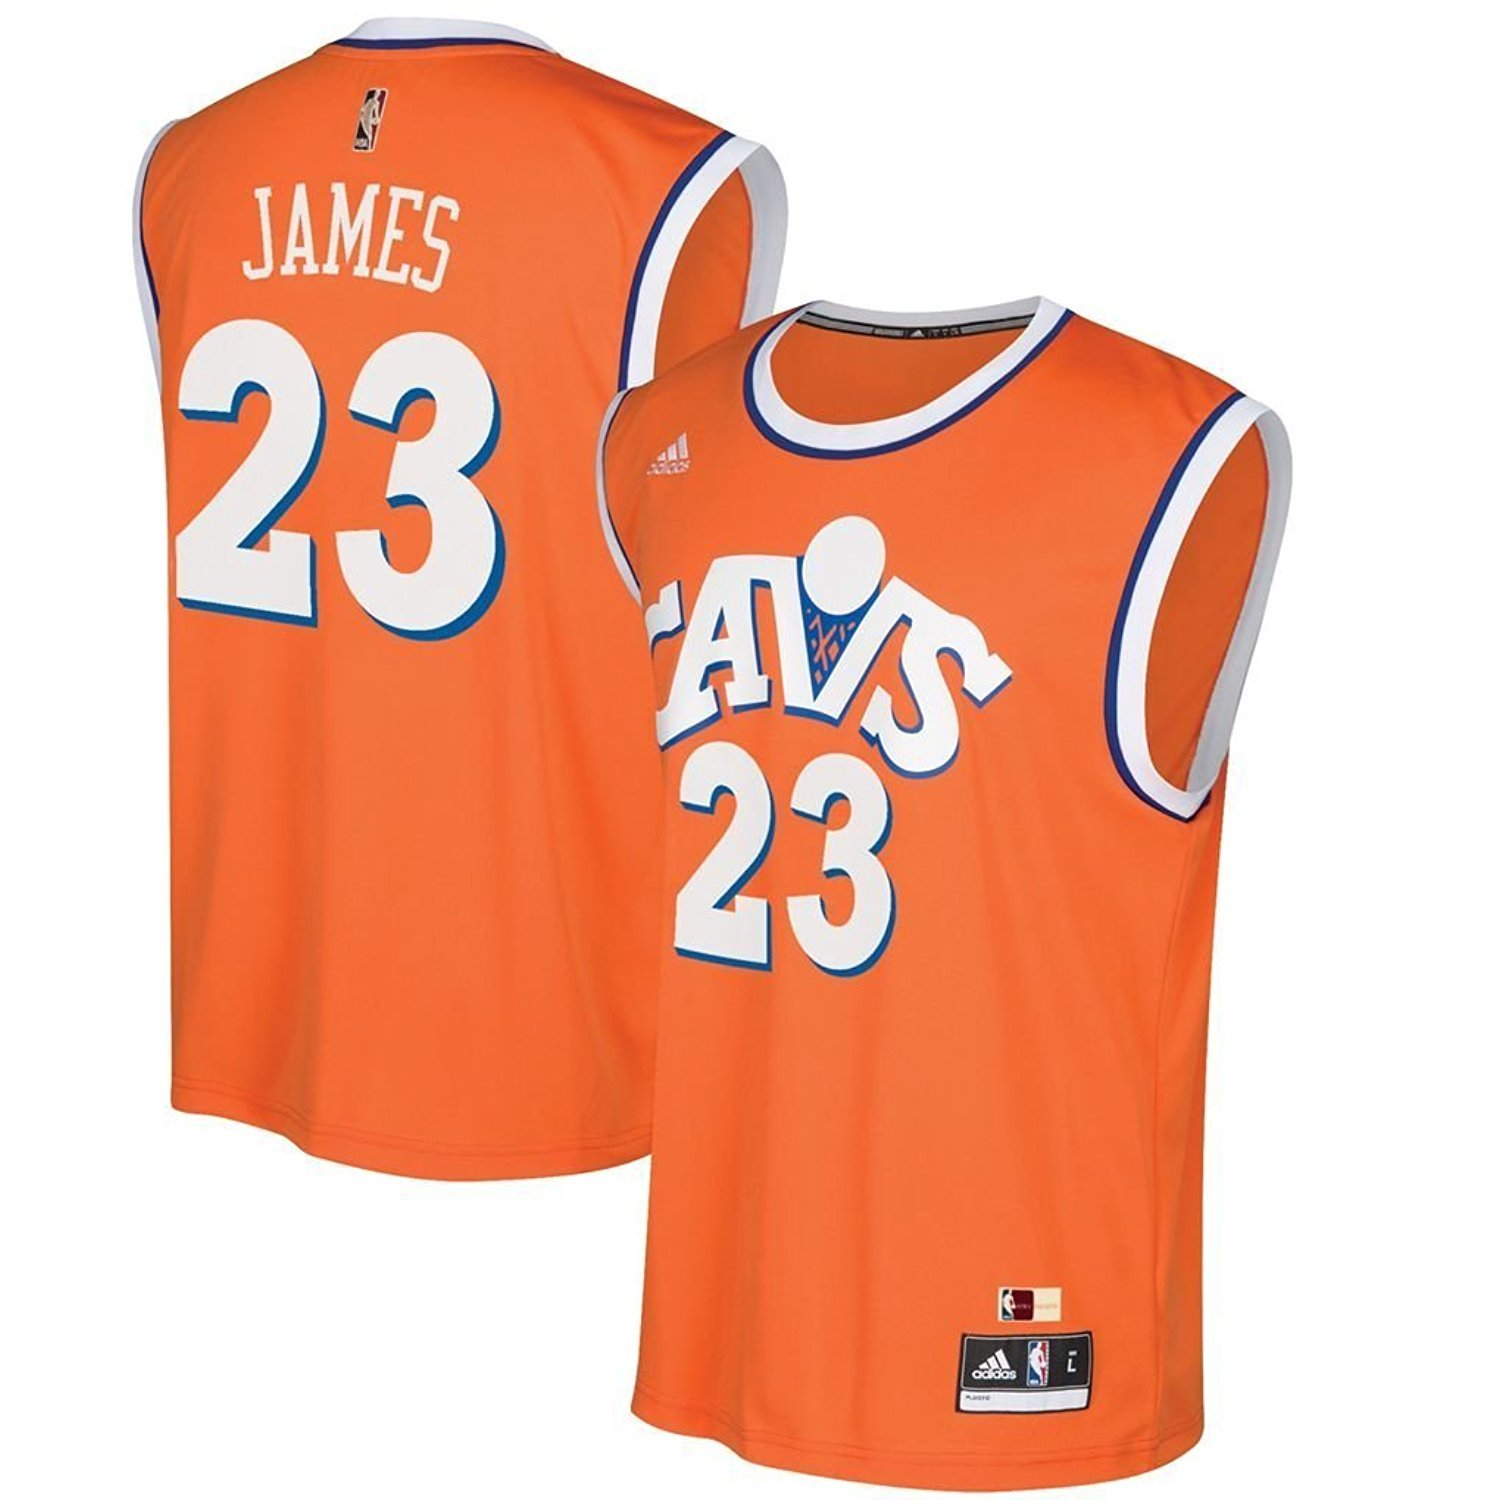 aaf7fc2f018a Amazon.com  Lebron James Cleveland Cavaliers Replica Orange Throwback Youth  Jersey Boys 8-20 (Youth Small 8)  Clothing